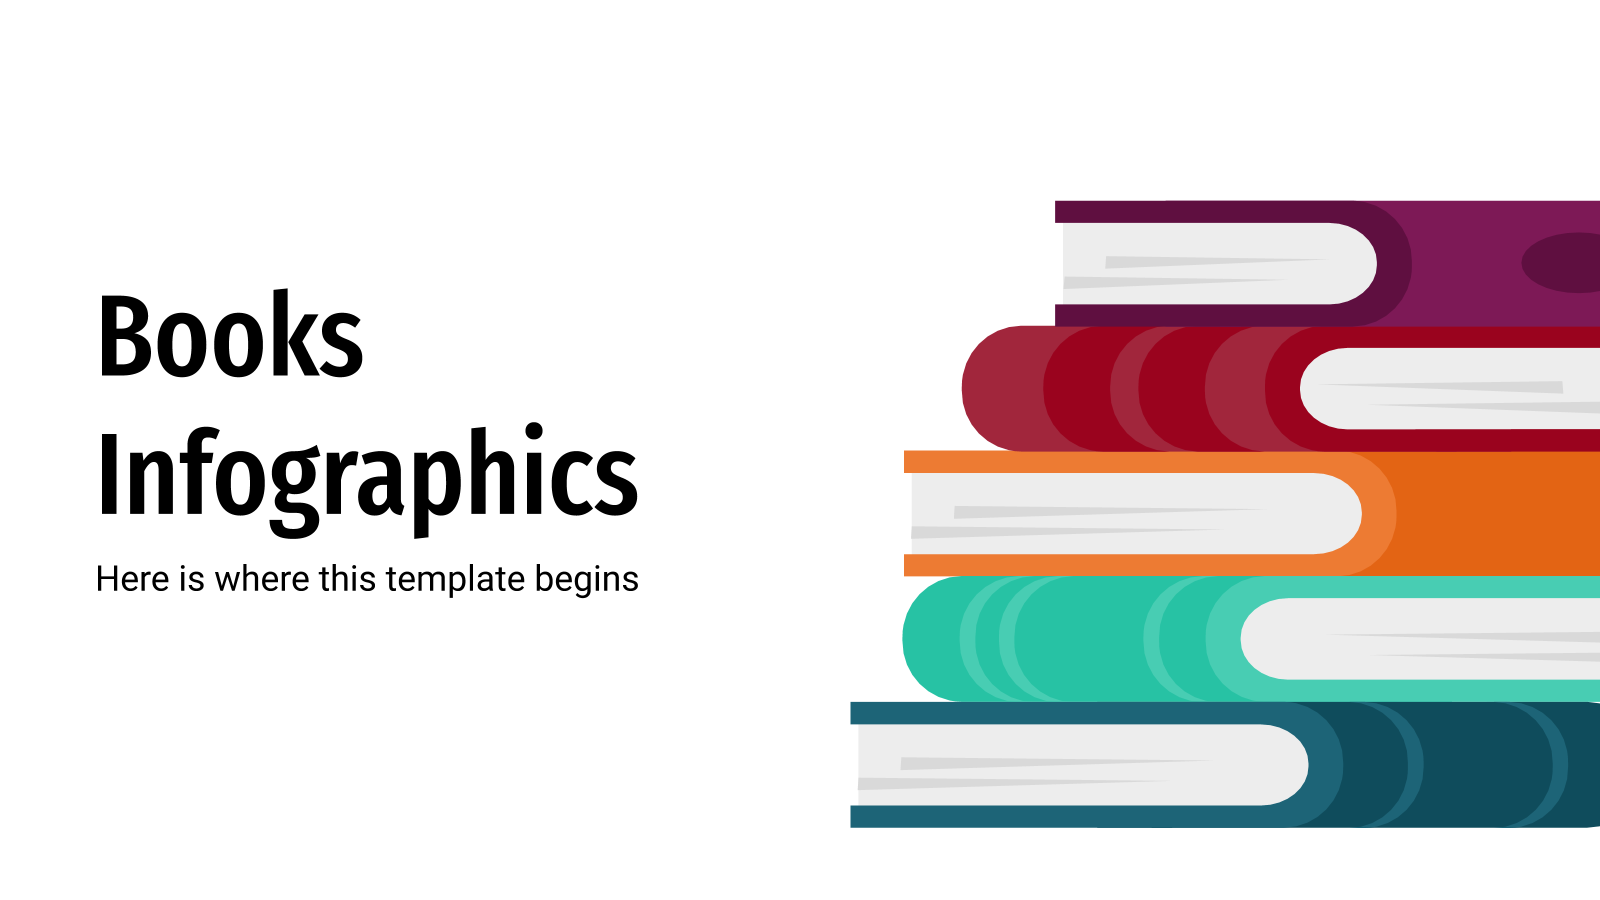 Books Infographics presentation template